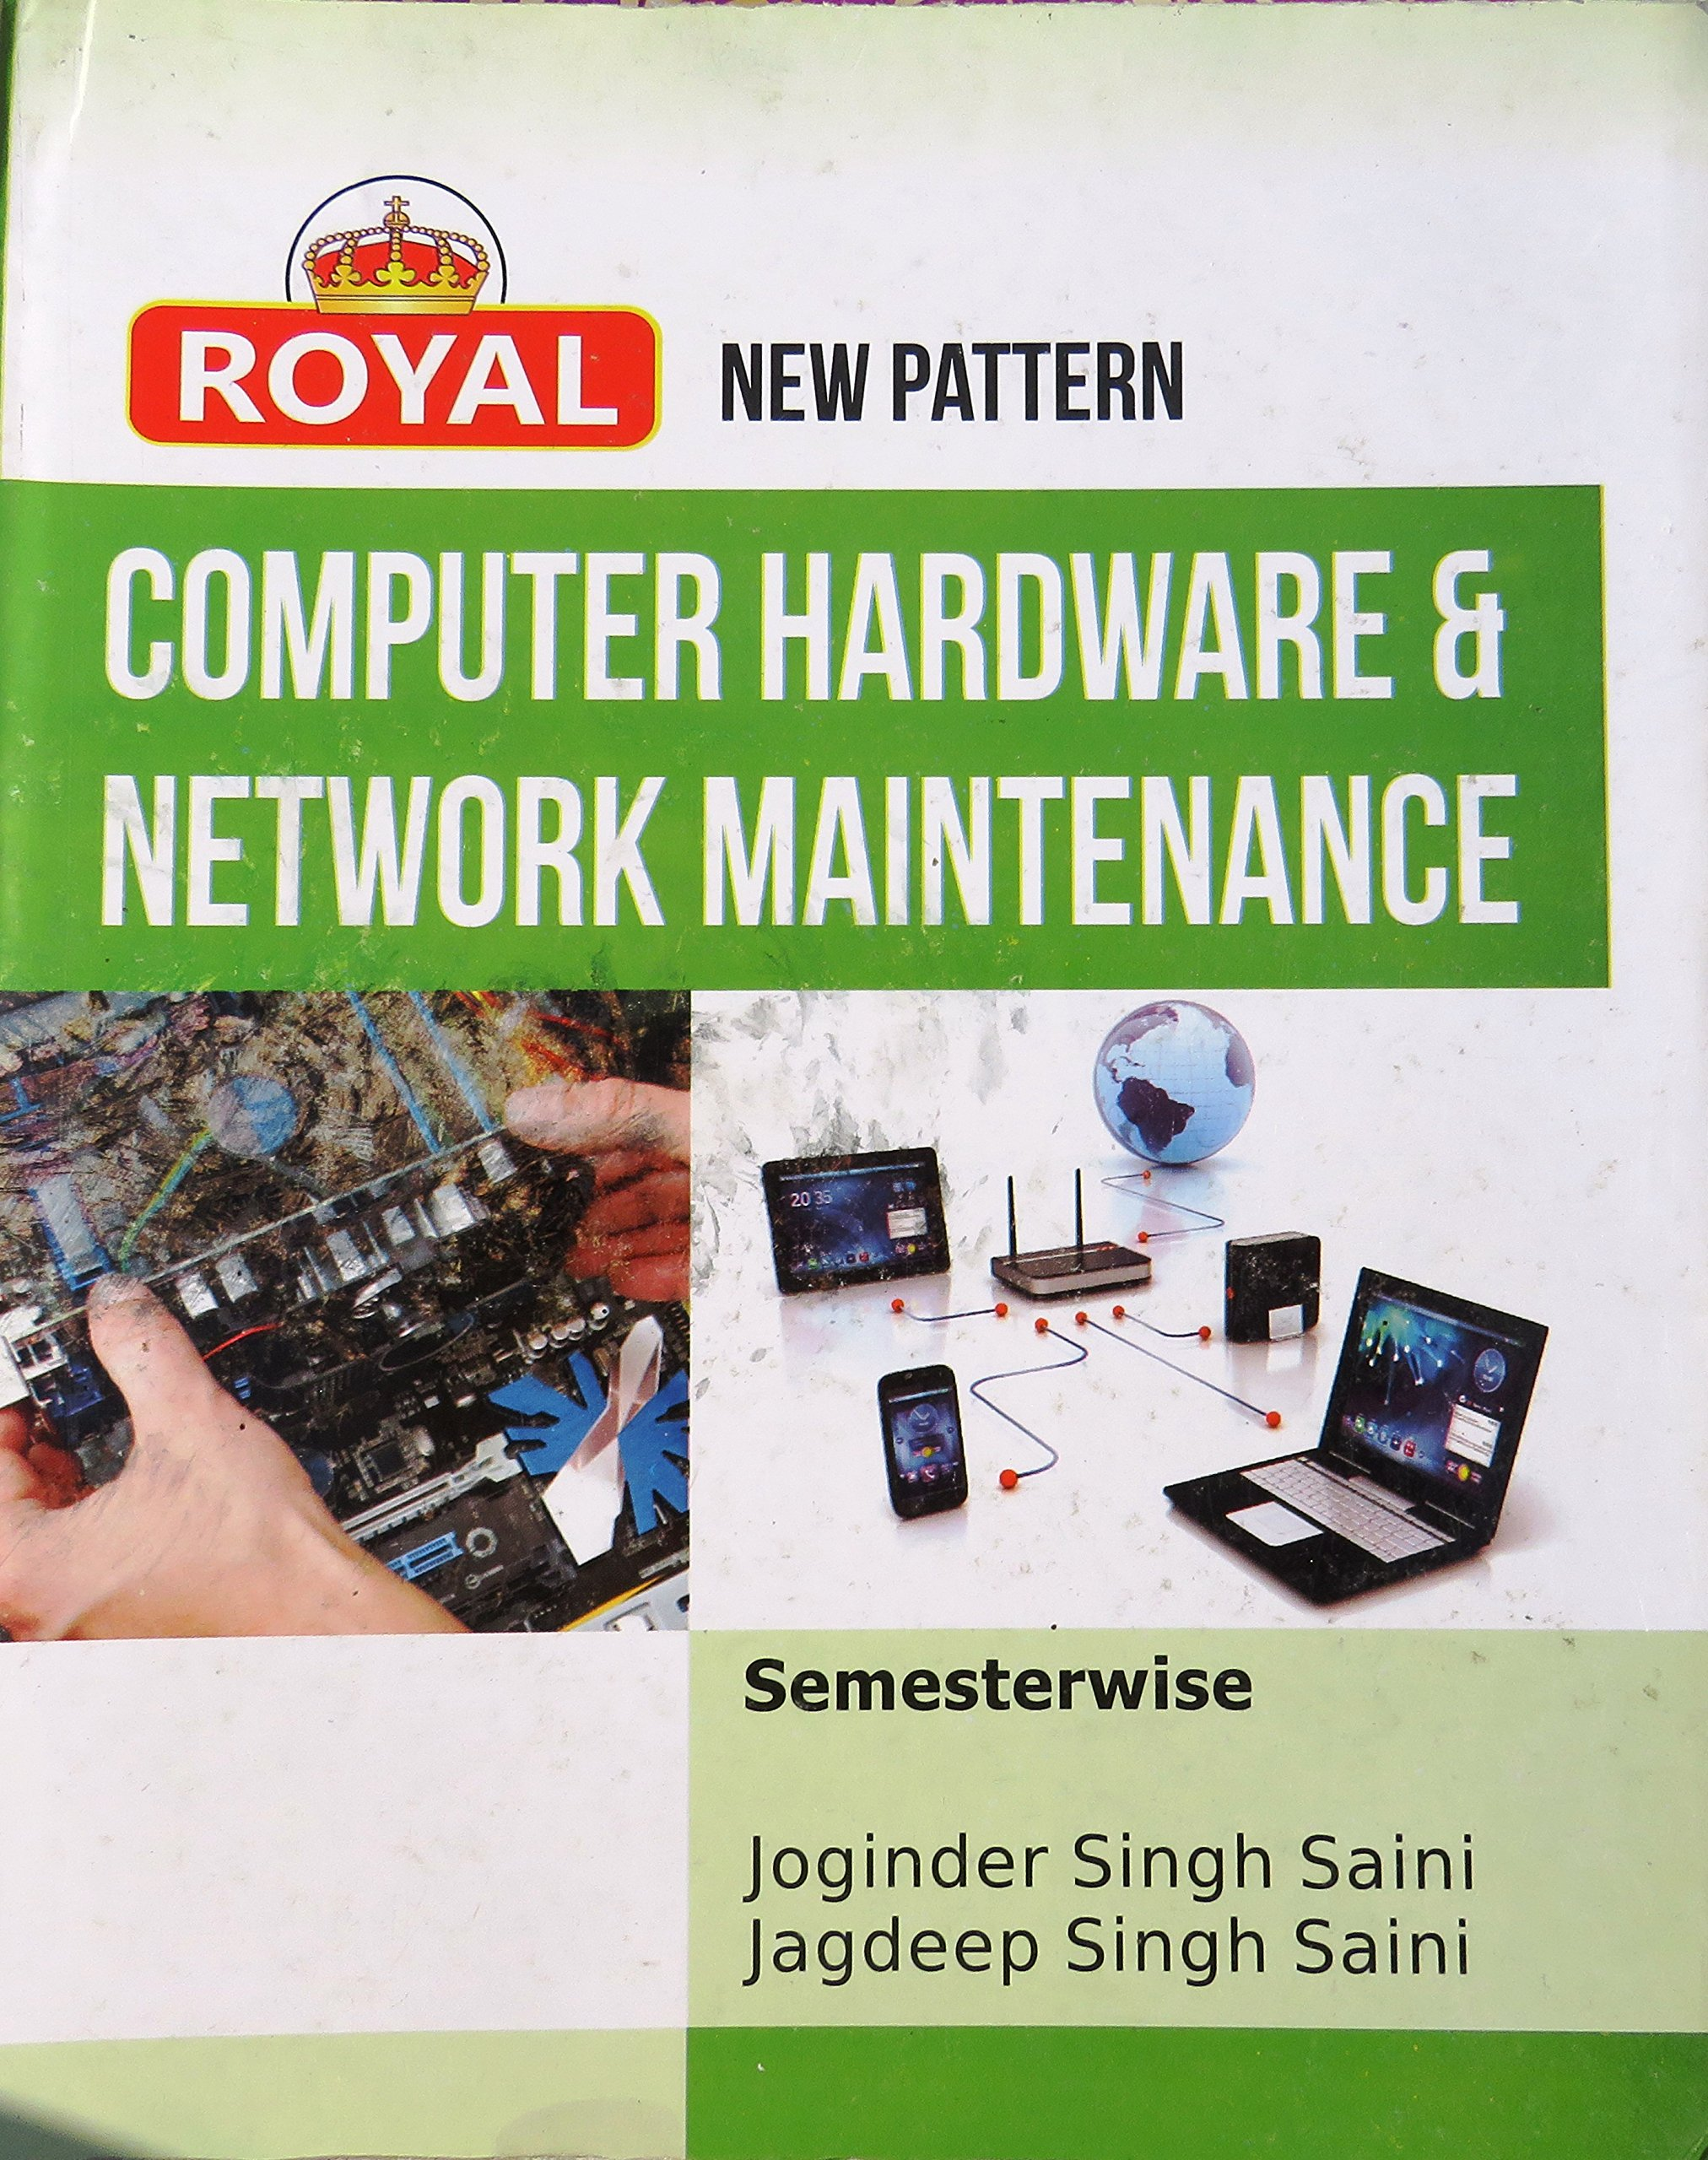 Madison : Computer hardware and networking books in hindi